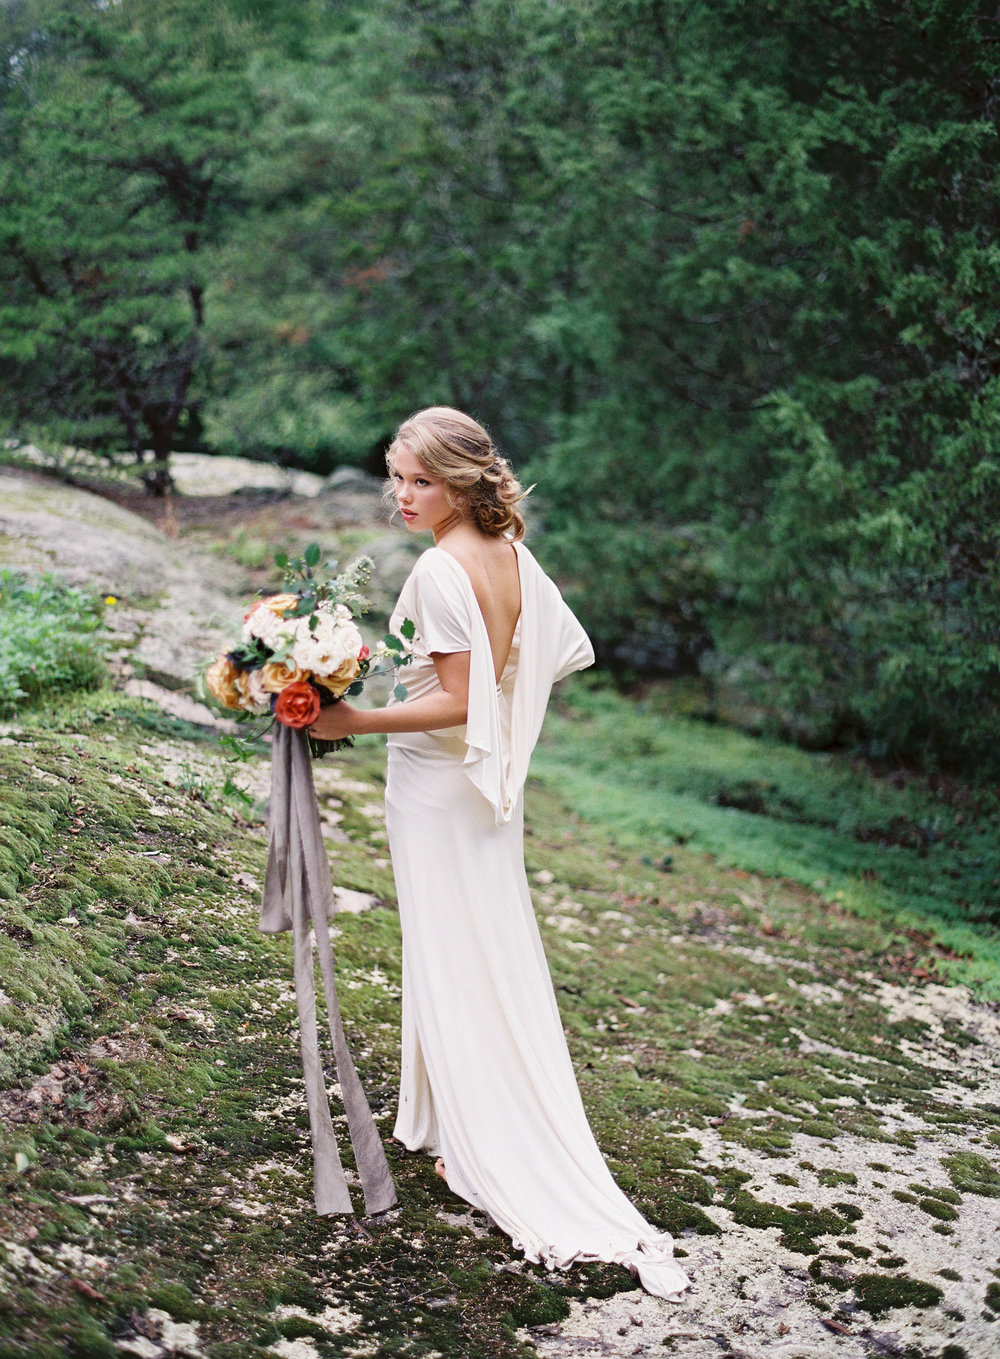 Autumn Wedding Inspiration at the Mill at Fine Creek by Richmond Virginia Wedding Planner East Made Event Company and Michael and Carina Photography04.jpg